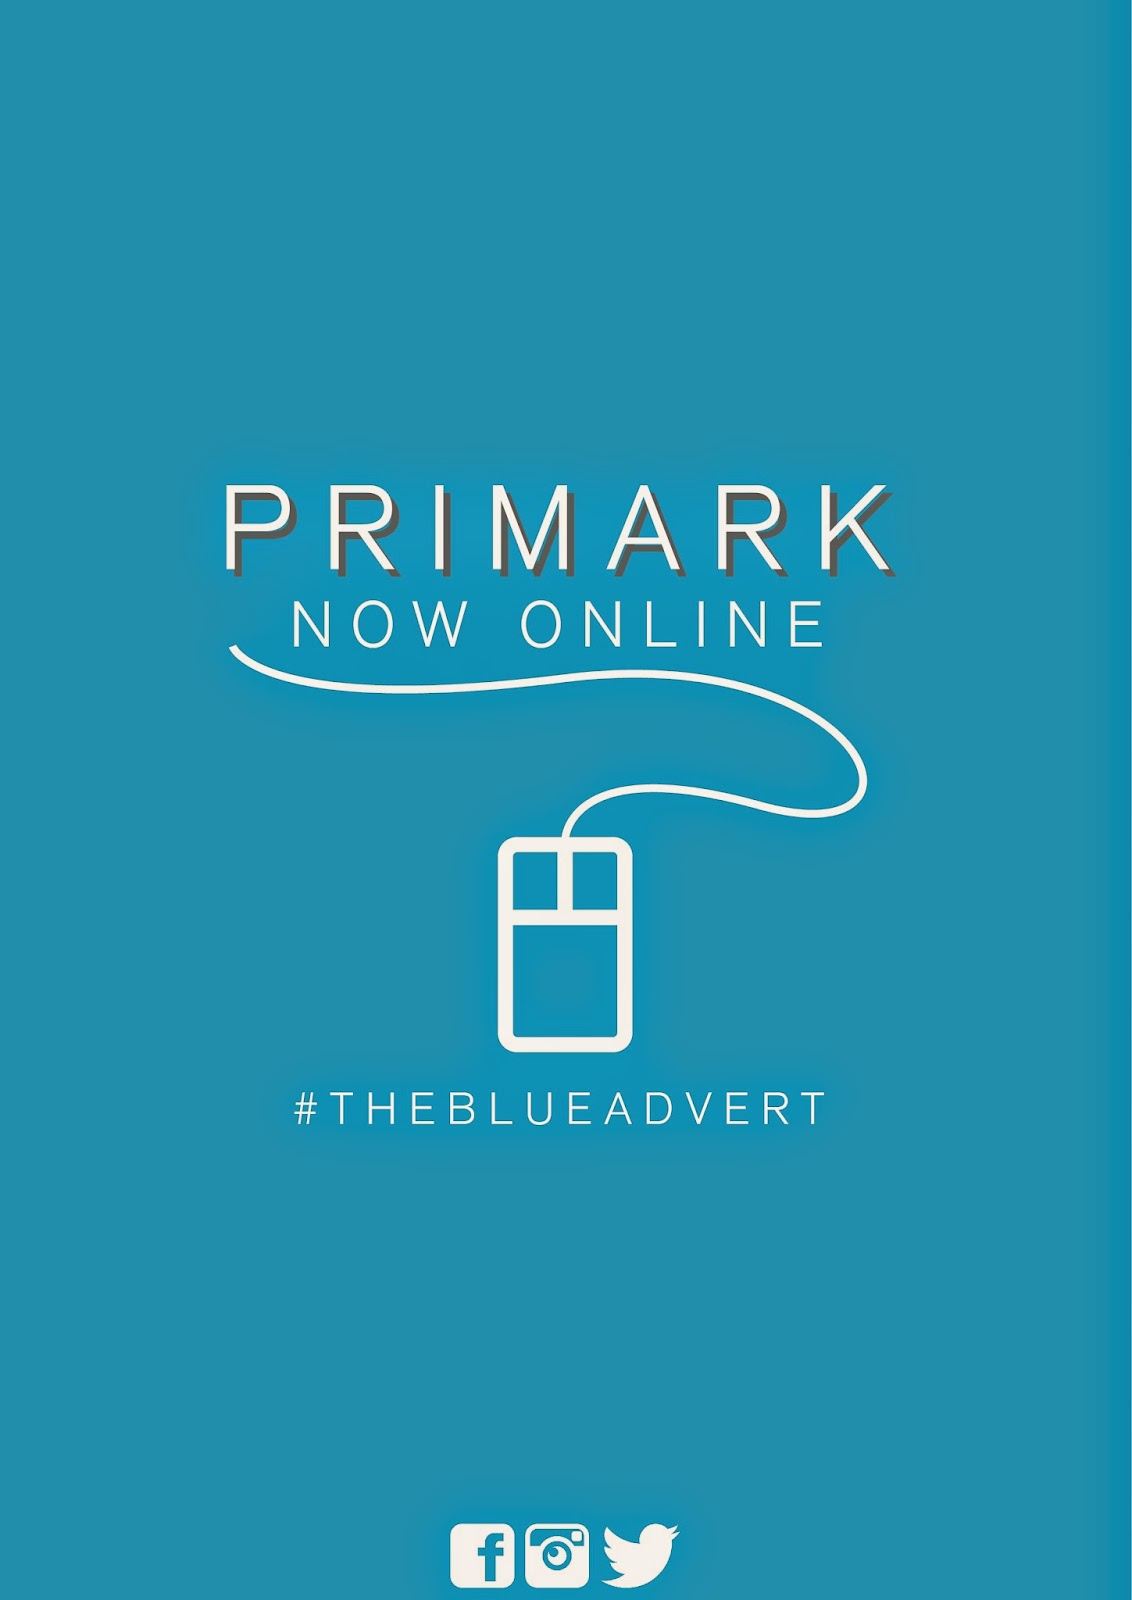 marketing strategies at primark Real estate marketing strategies → buy cheap primark and hm clothing essay primark and h&m clothing are clothing retail companies that have many branches all over the world.